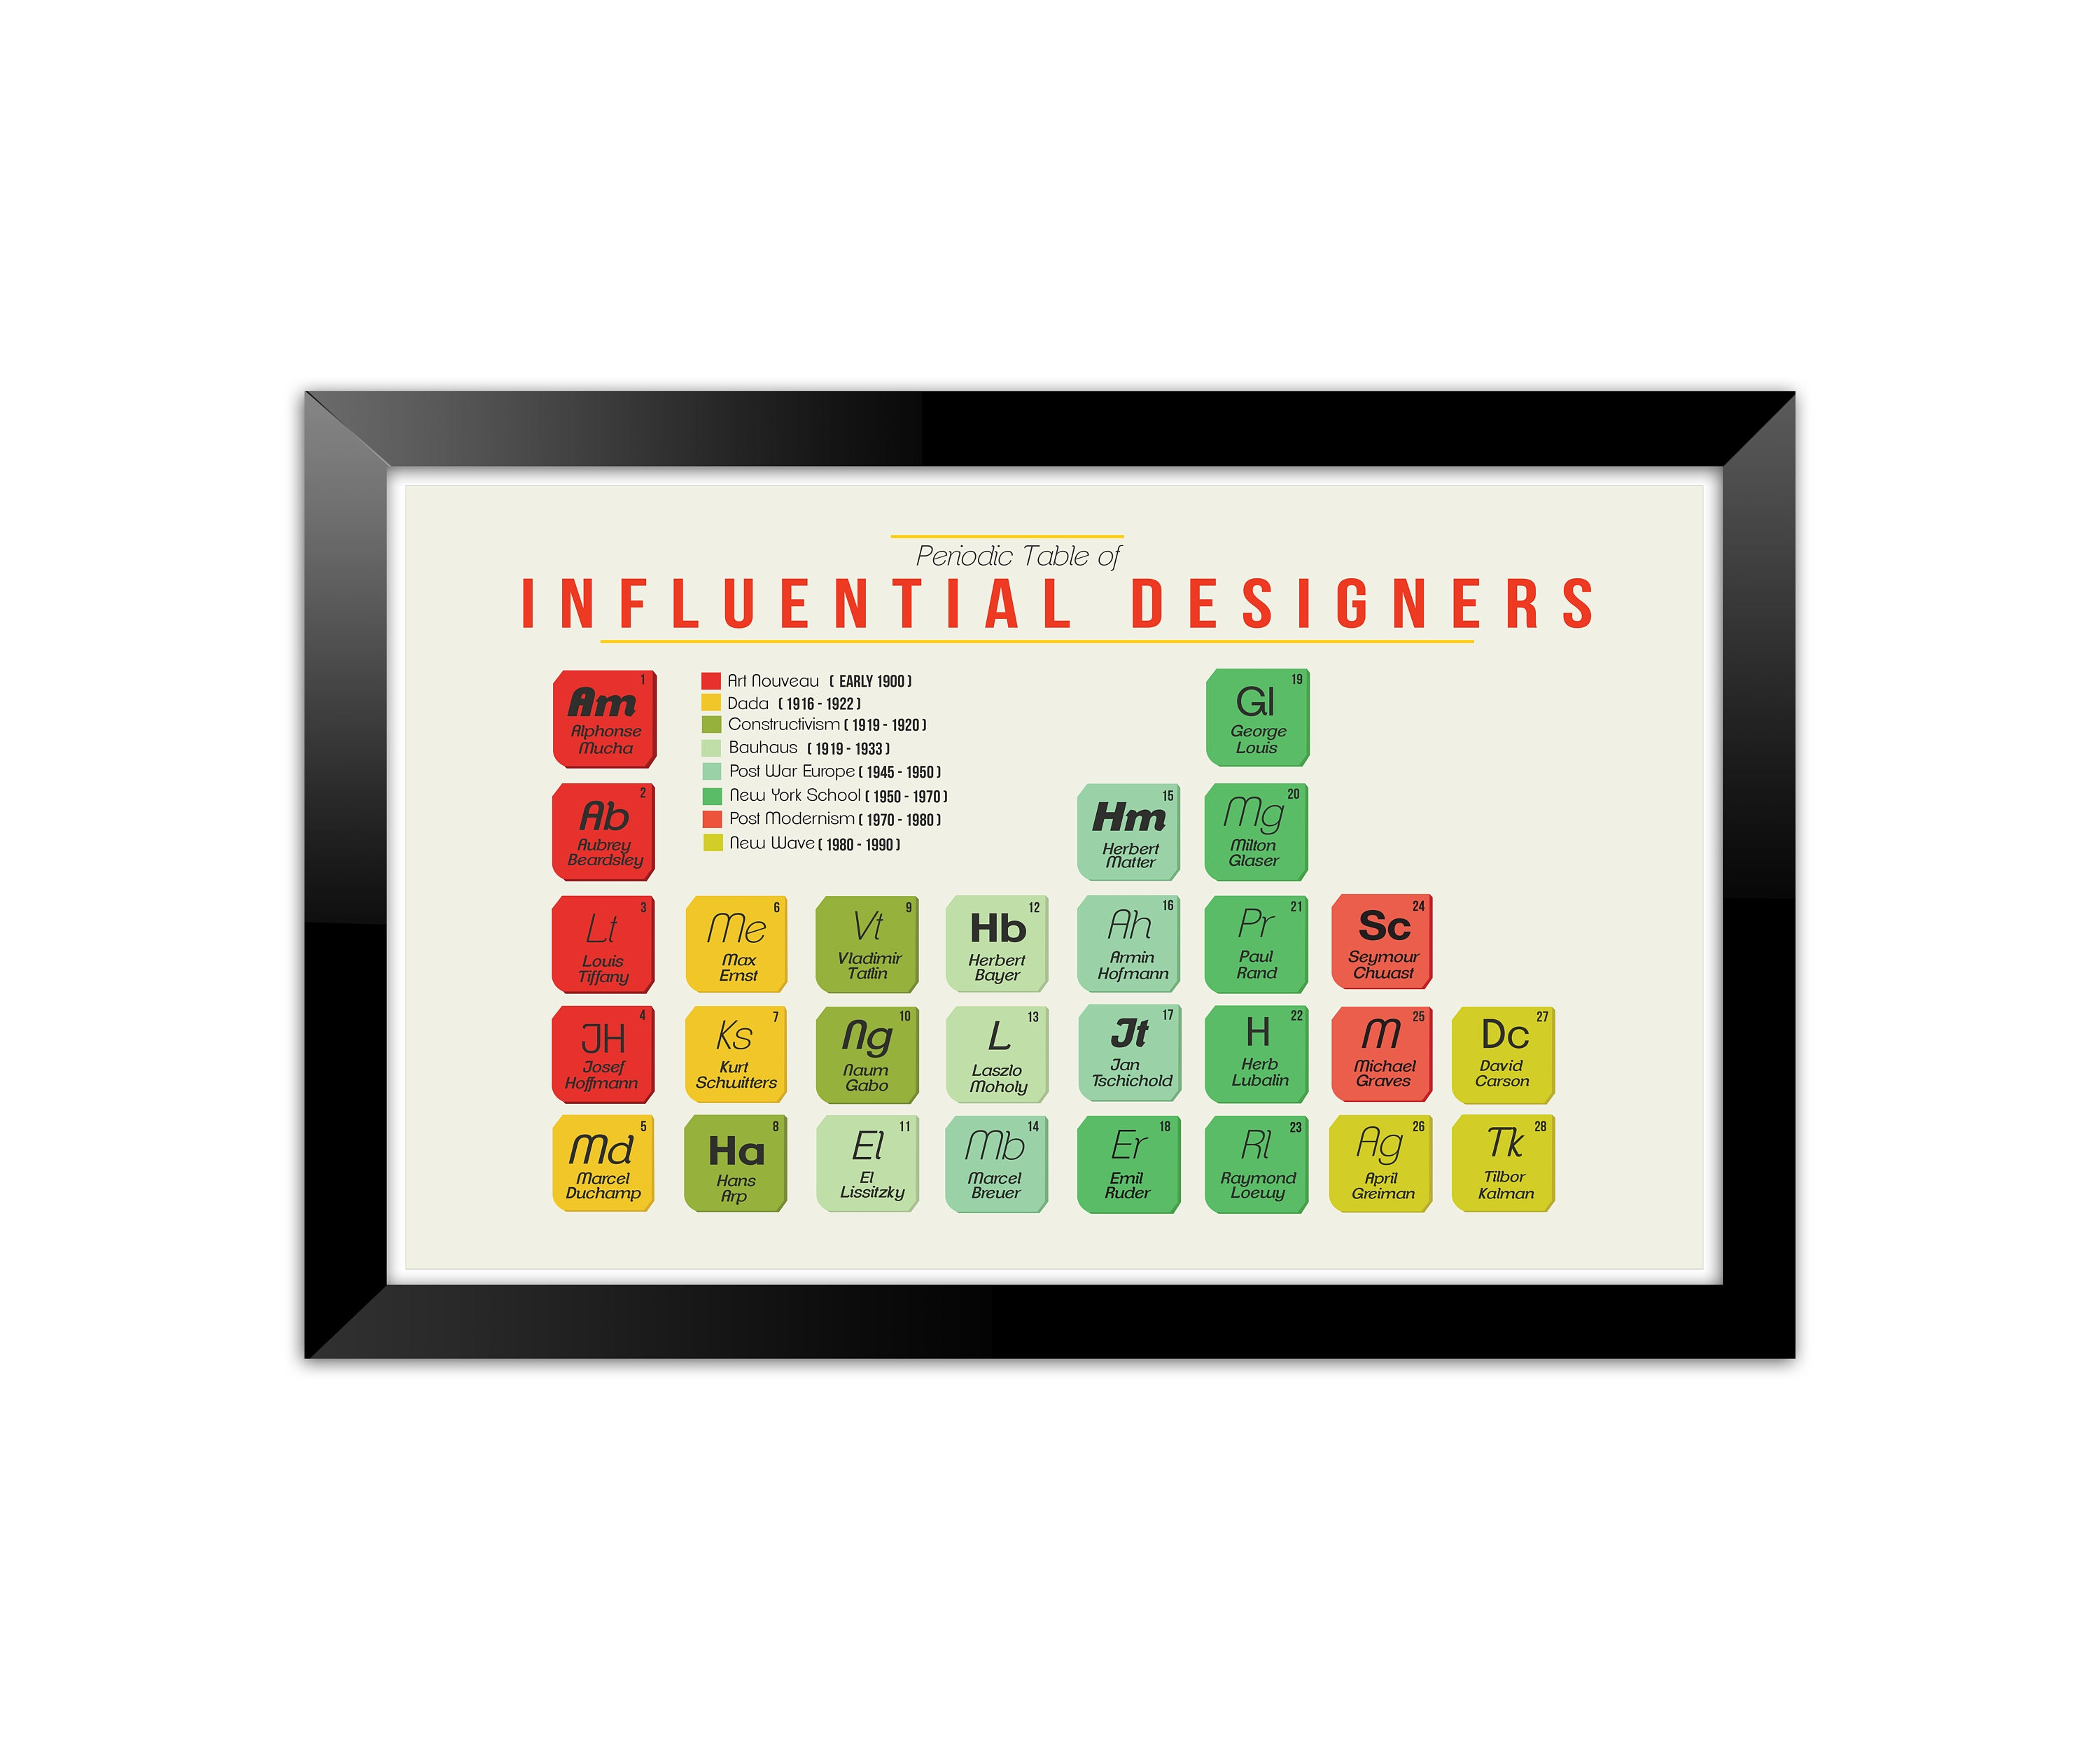 Art history periodic table poster description a great poster for art history enthusiastic gamestrikefo Images